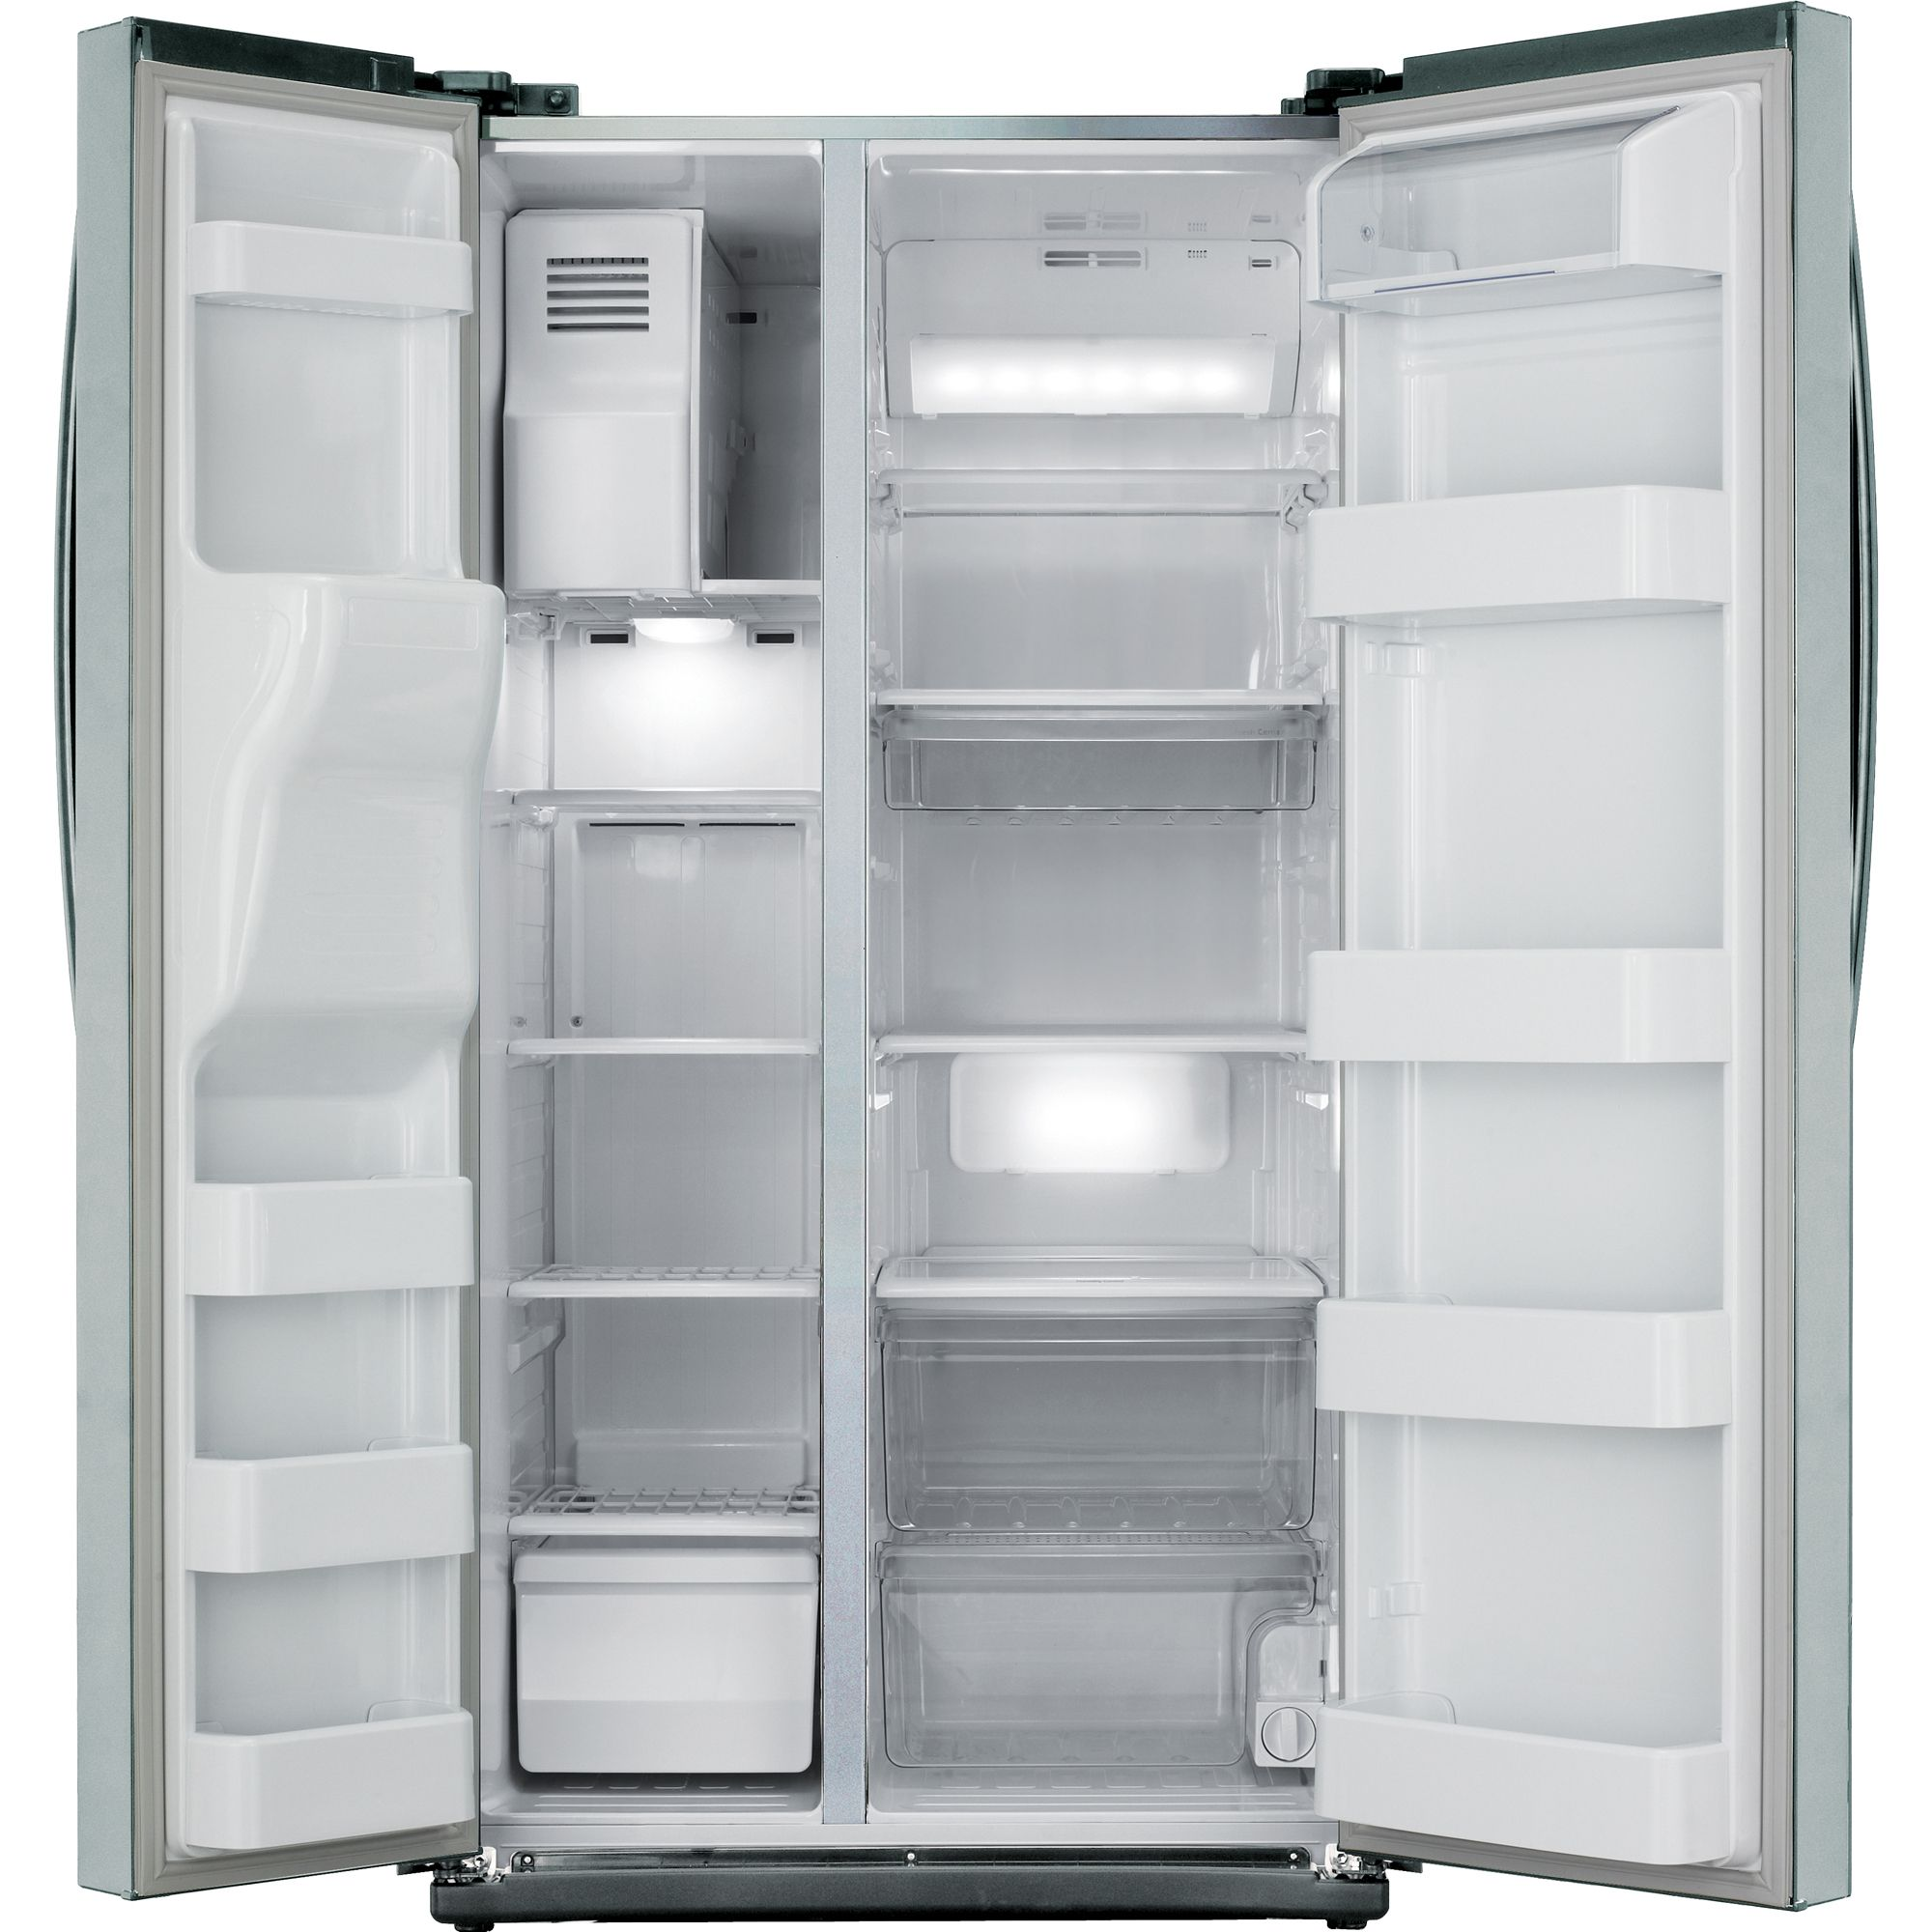 Samsung 26.0 cu. ft. Side-by-Side  Refrigerator Stainless Look